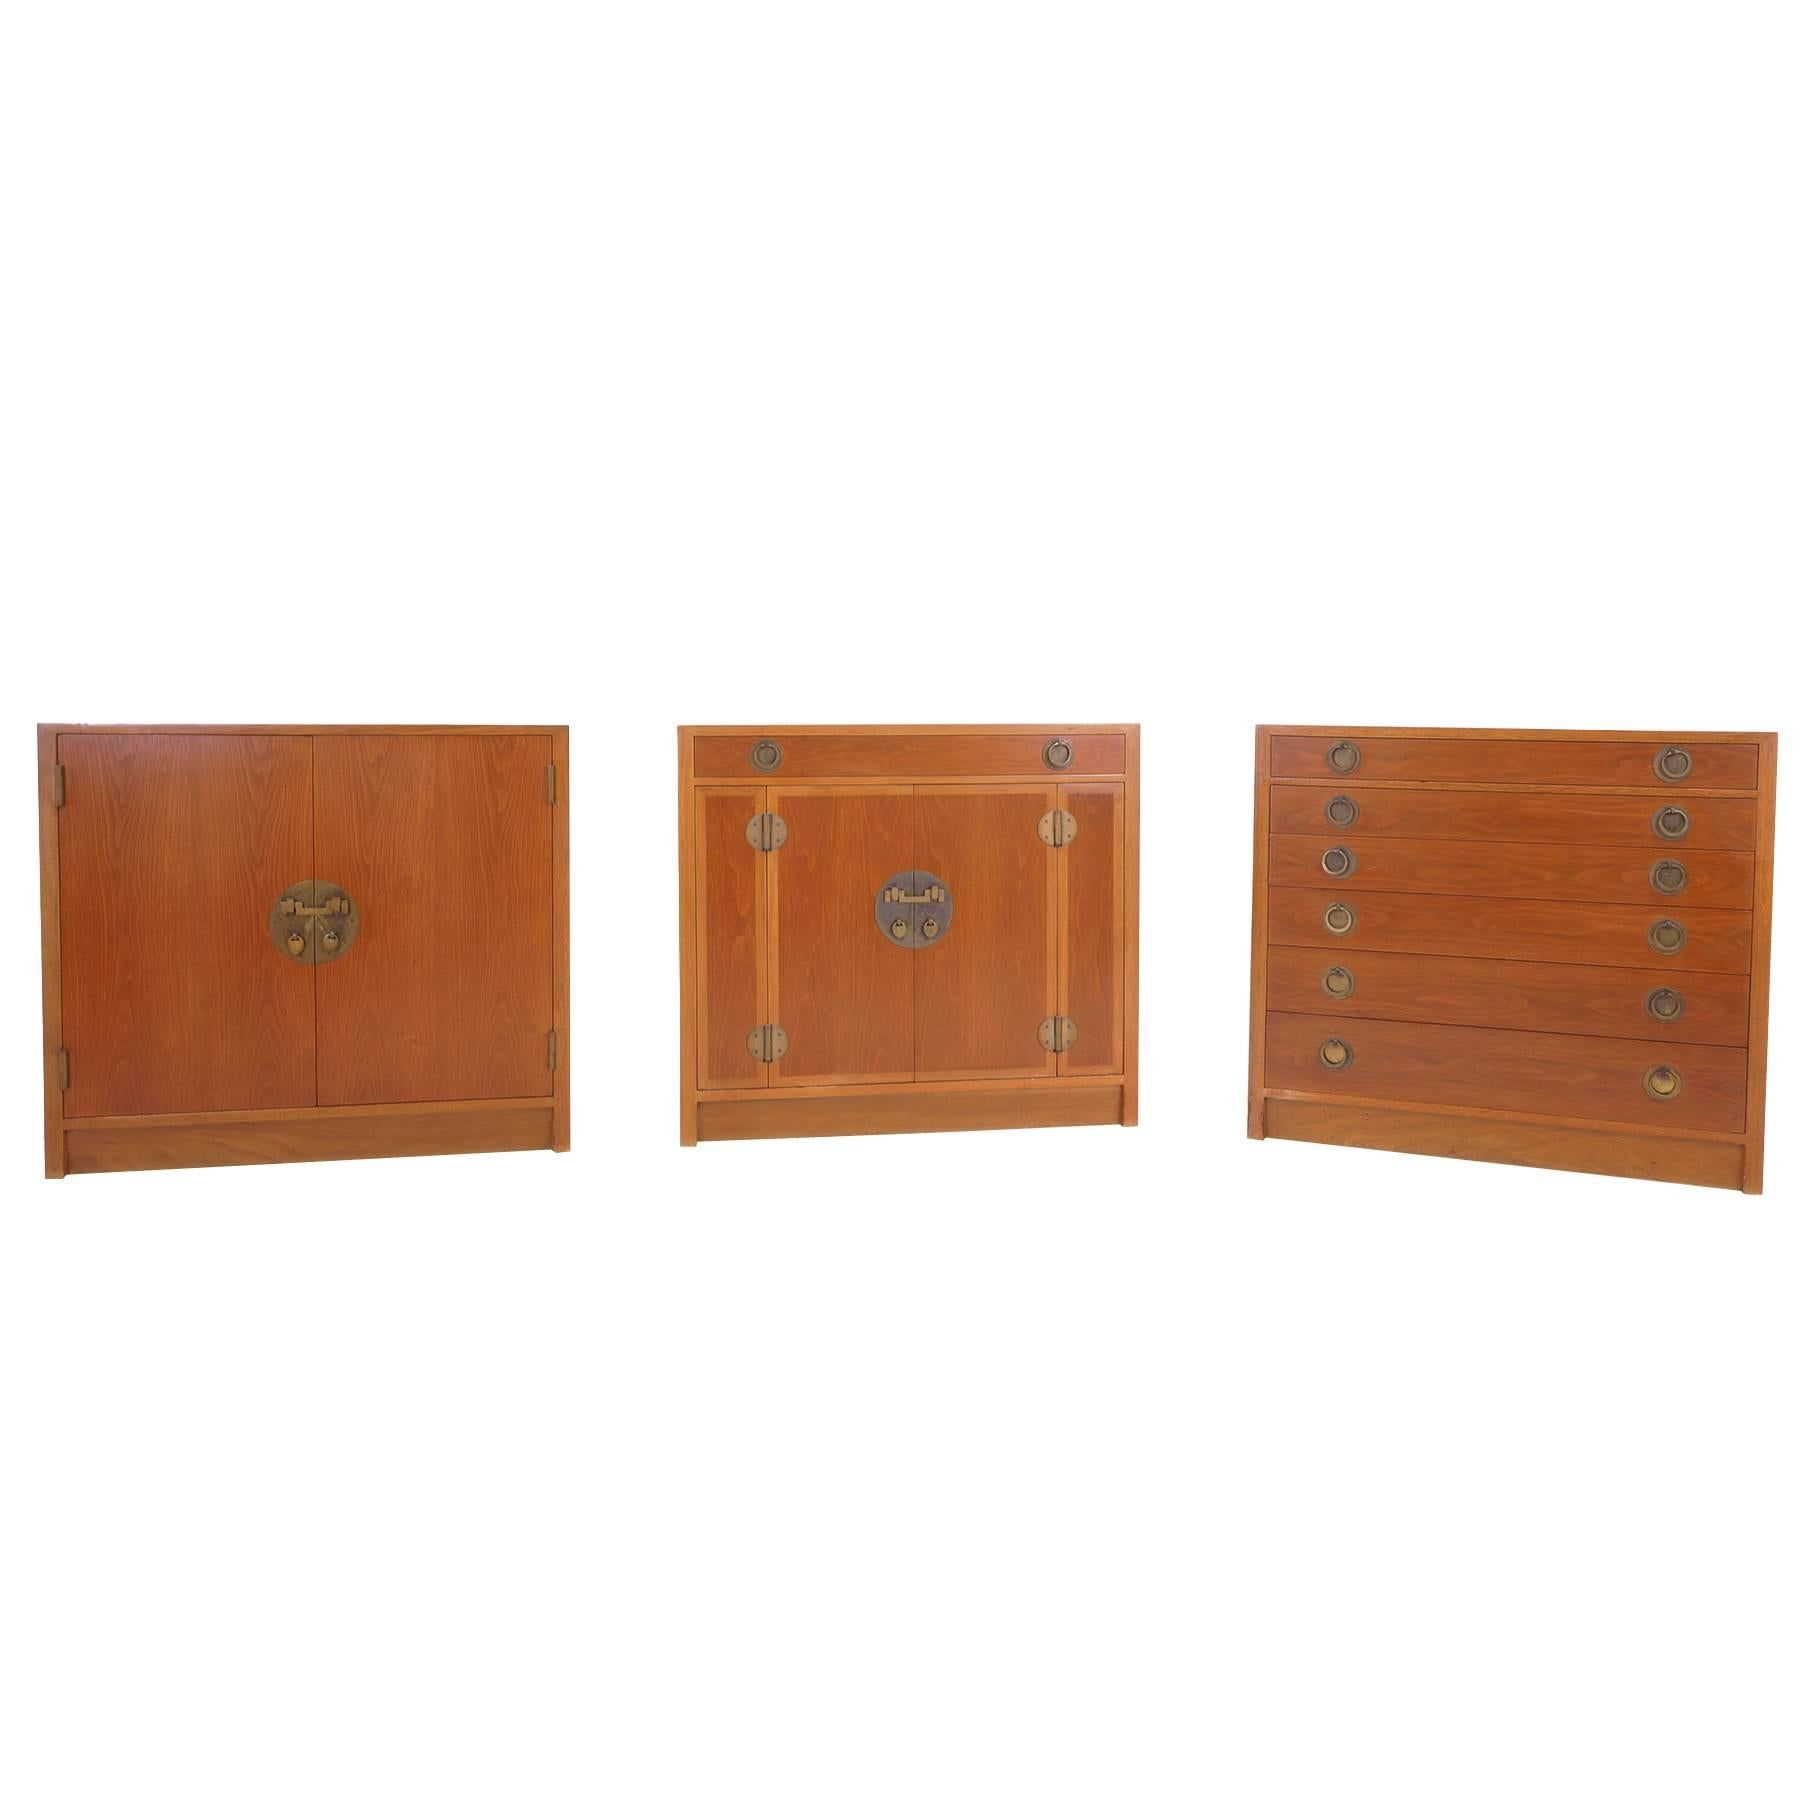 Three Storage Cabinets by Edward Wormley for Dunbar. Completely Original.